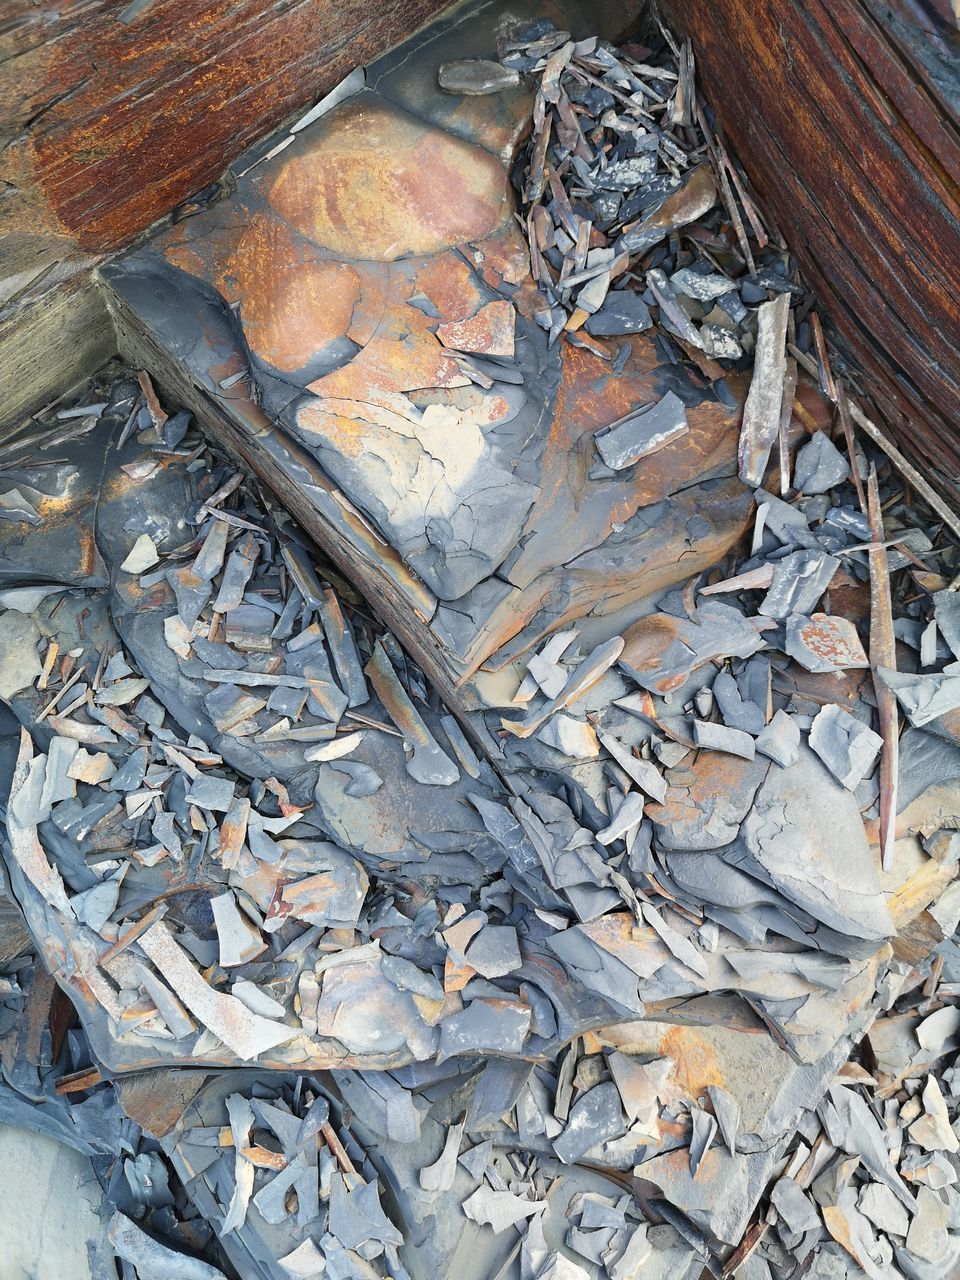 HIGH ANGLE VIEW OF DEAD FISH ON METAL SURFACE